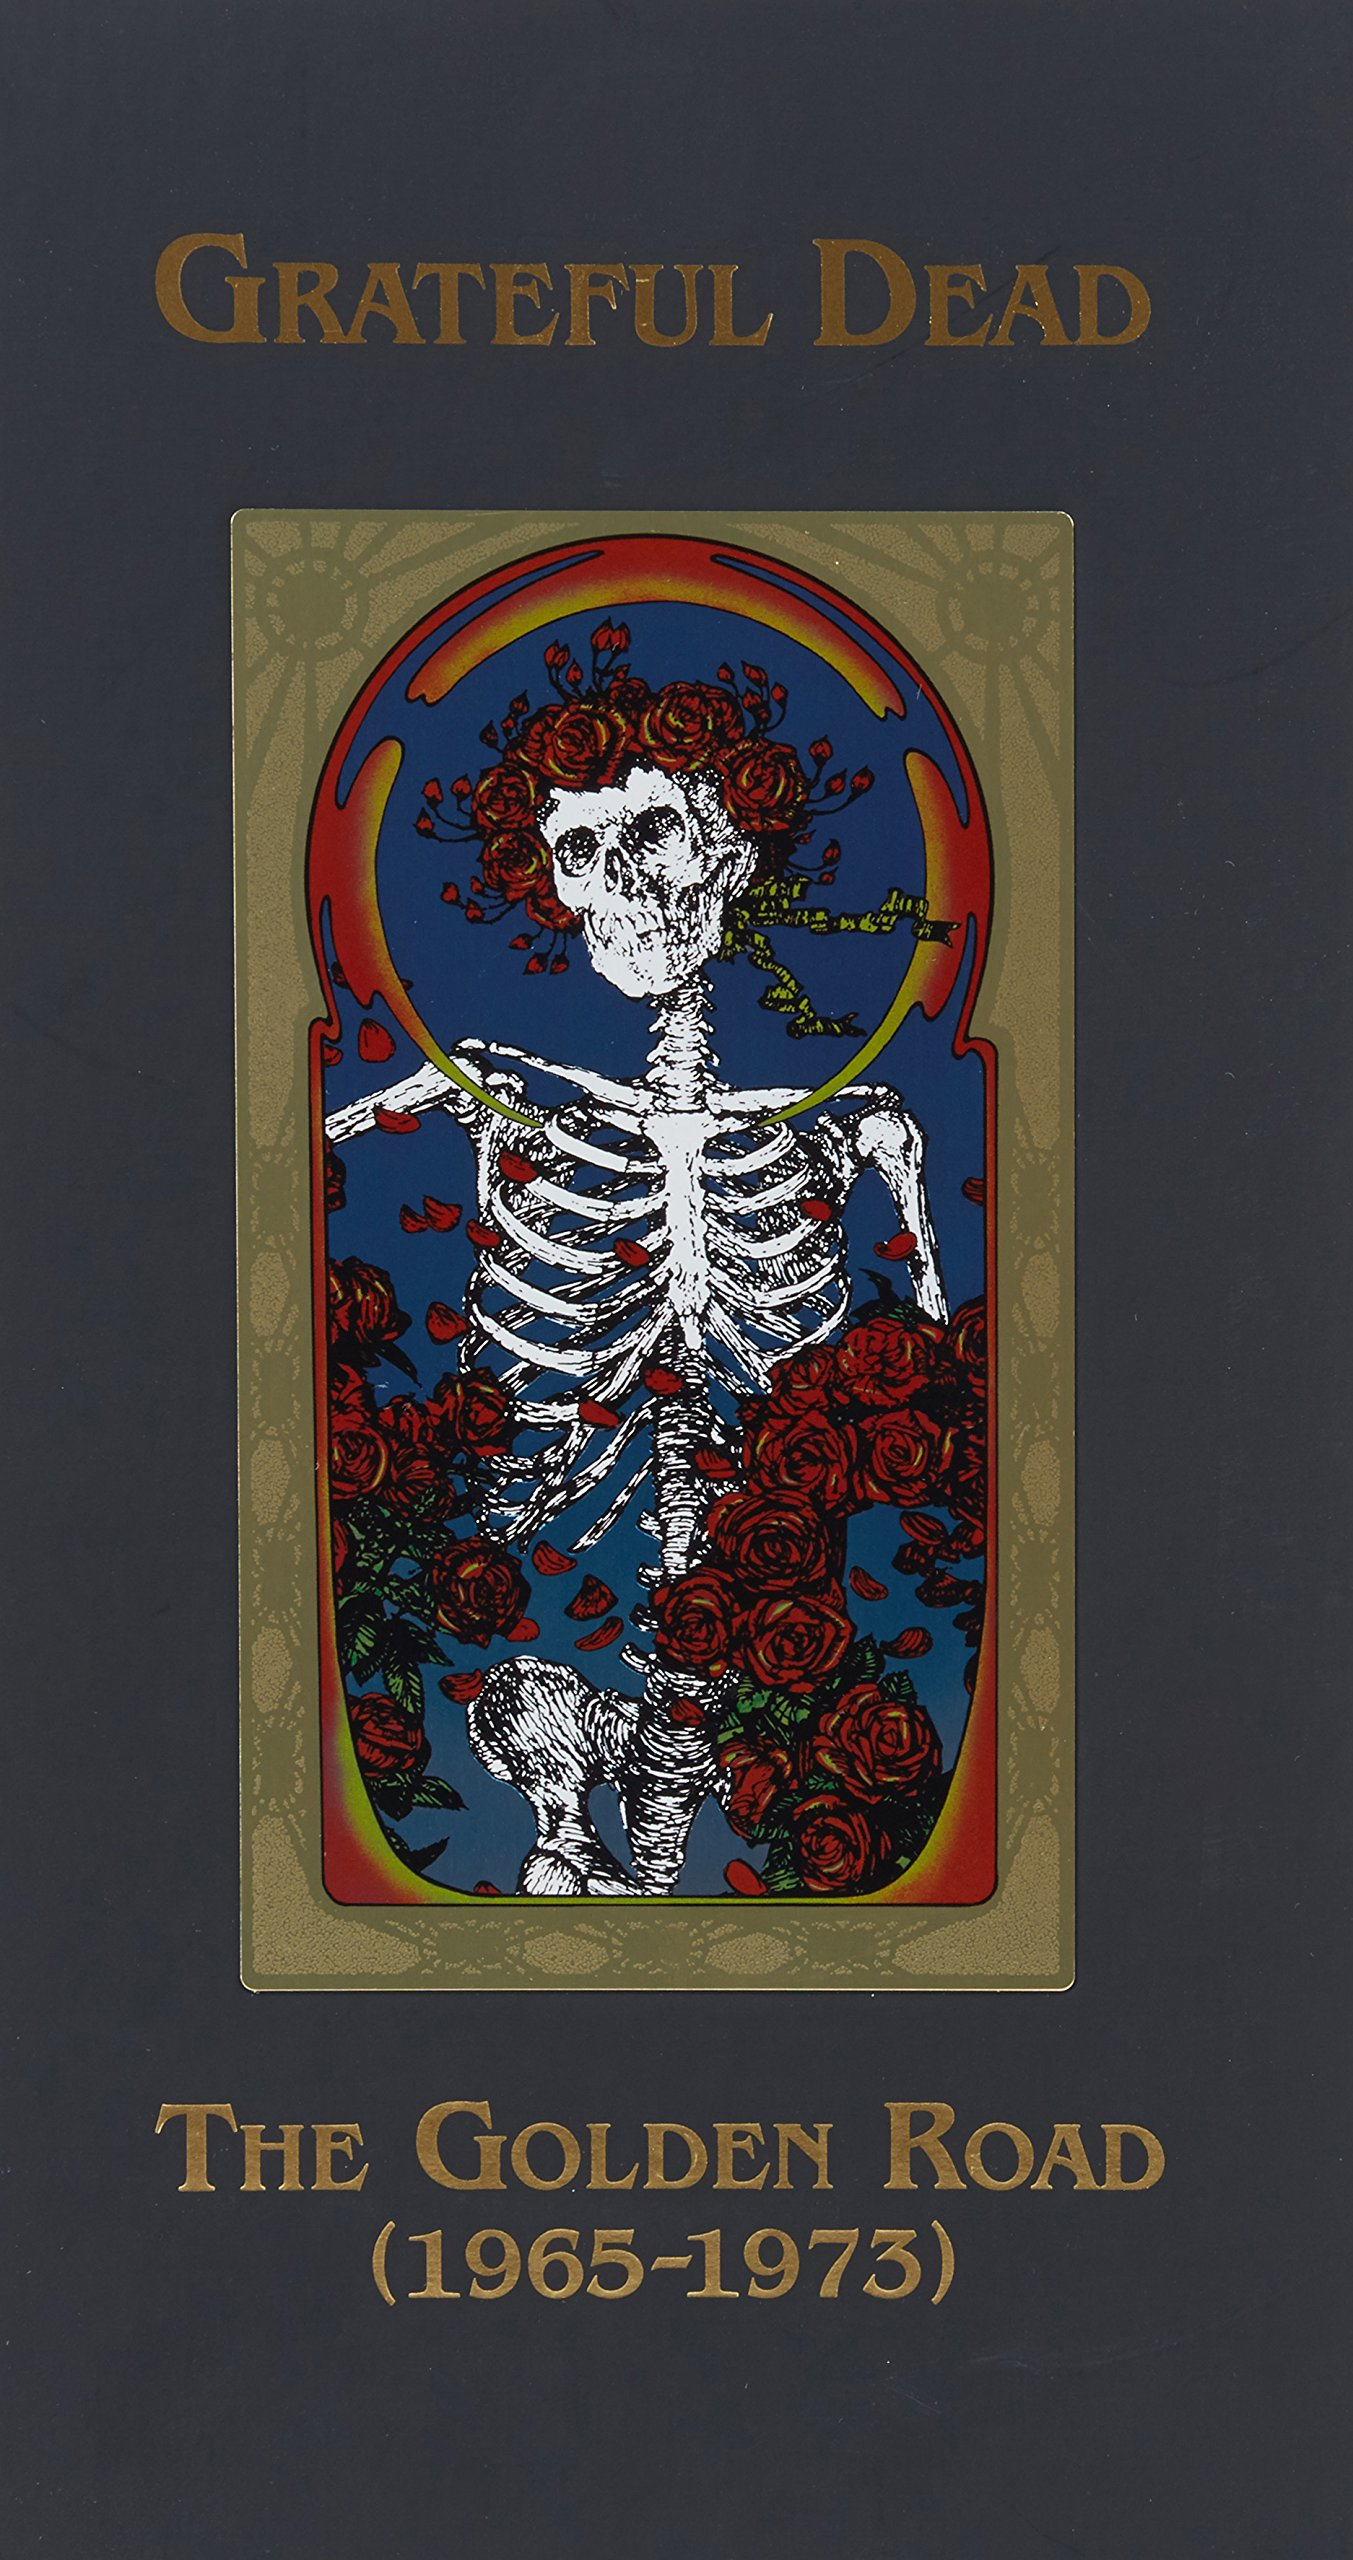 The Golden Road (1965 - 1973) by Grateful Dead Production